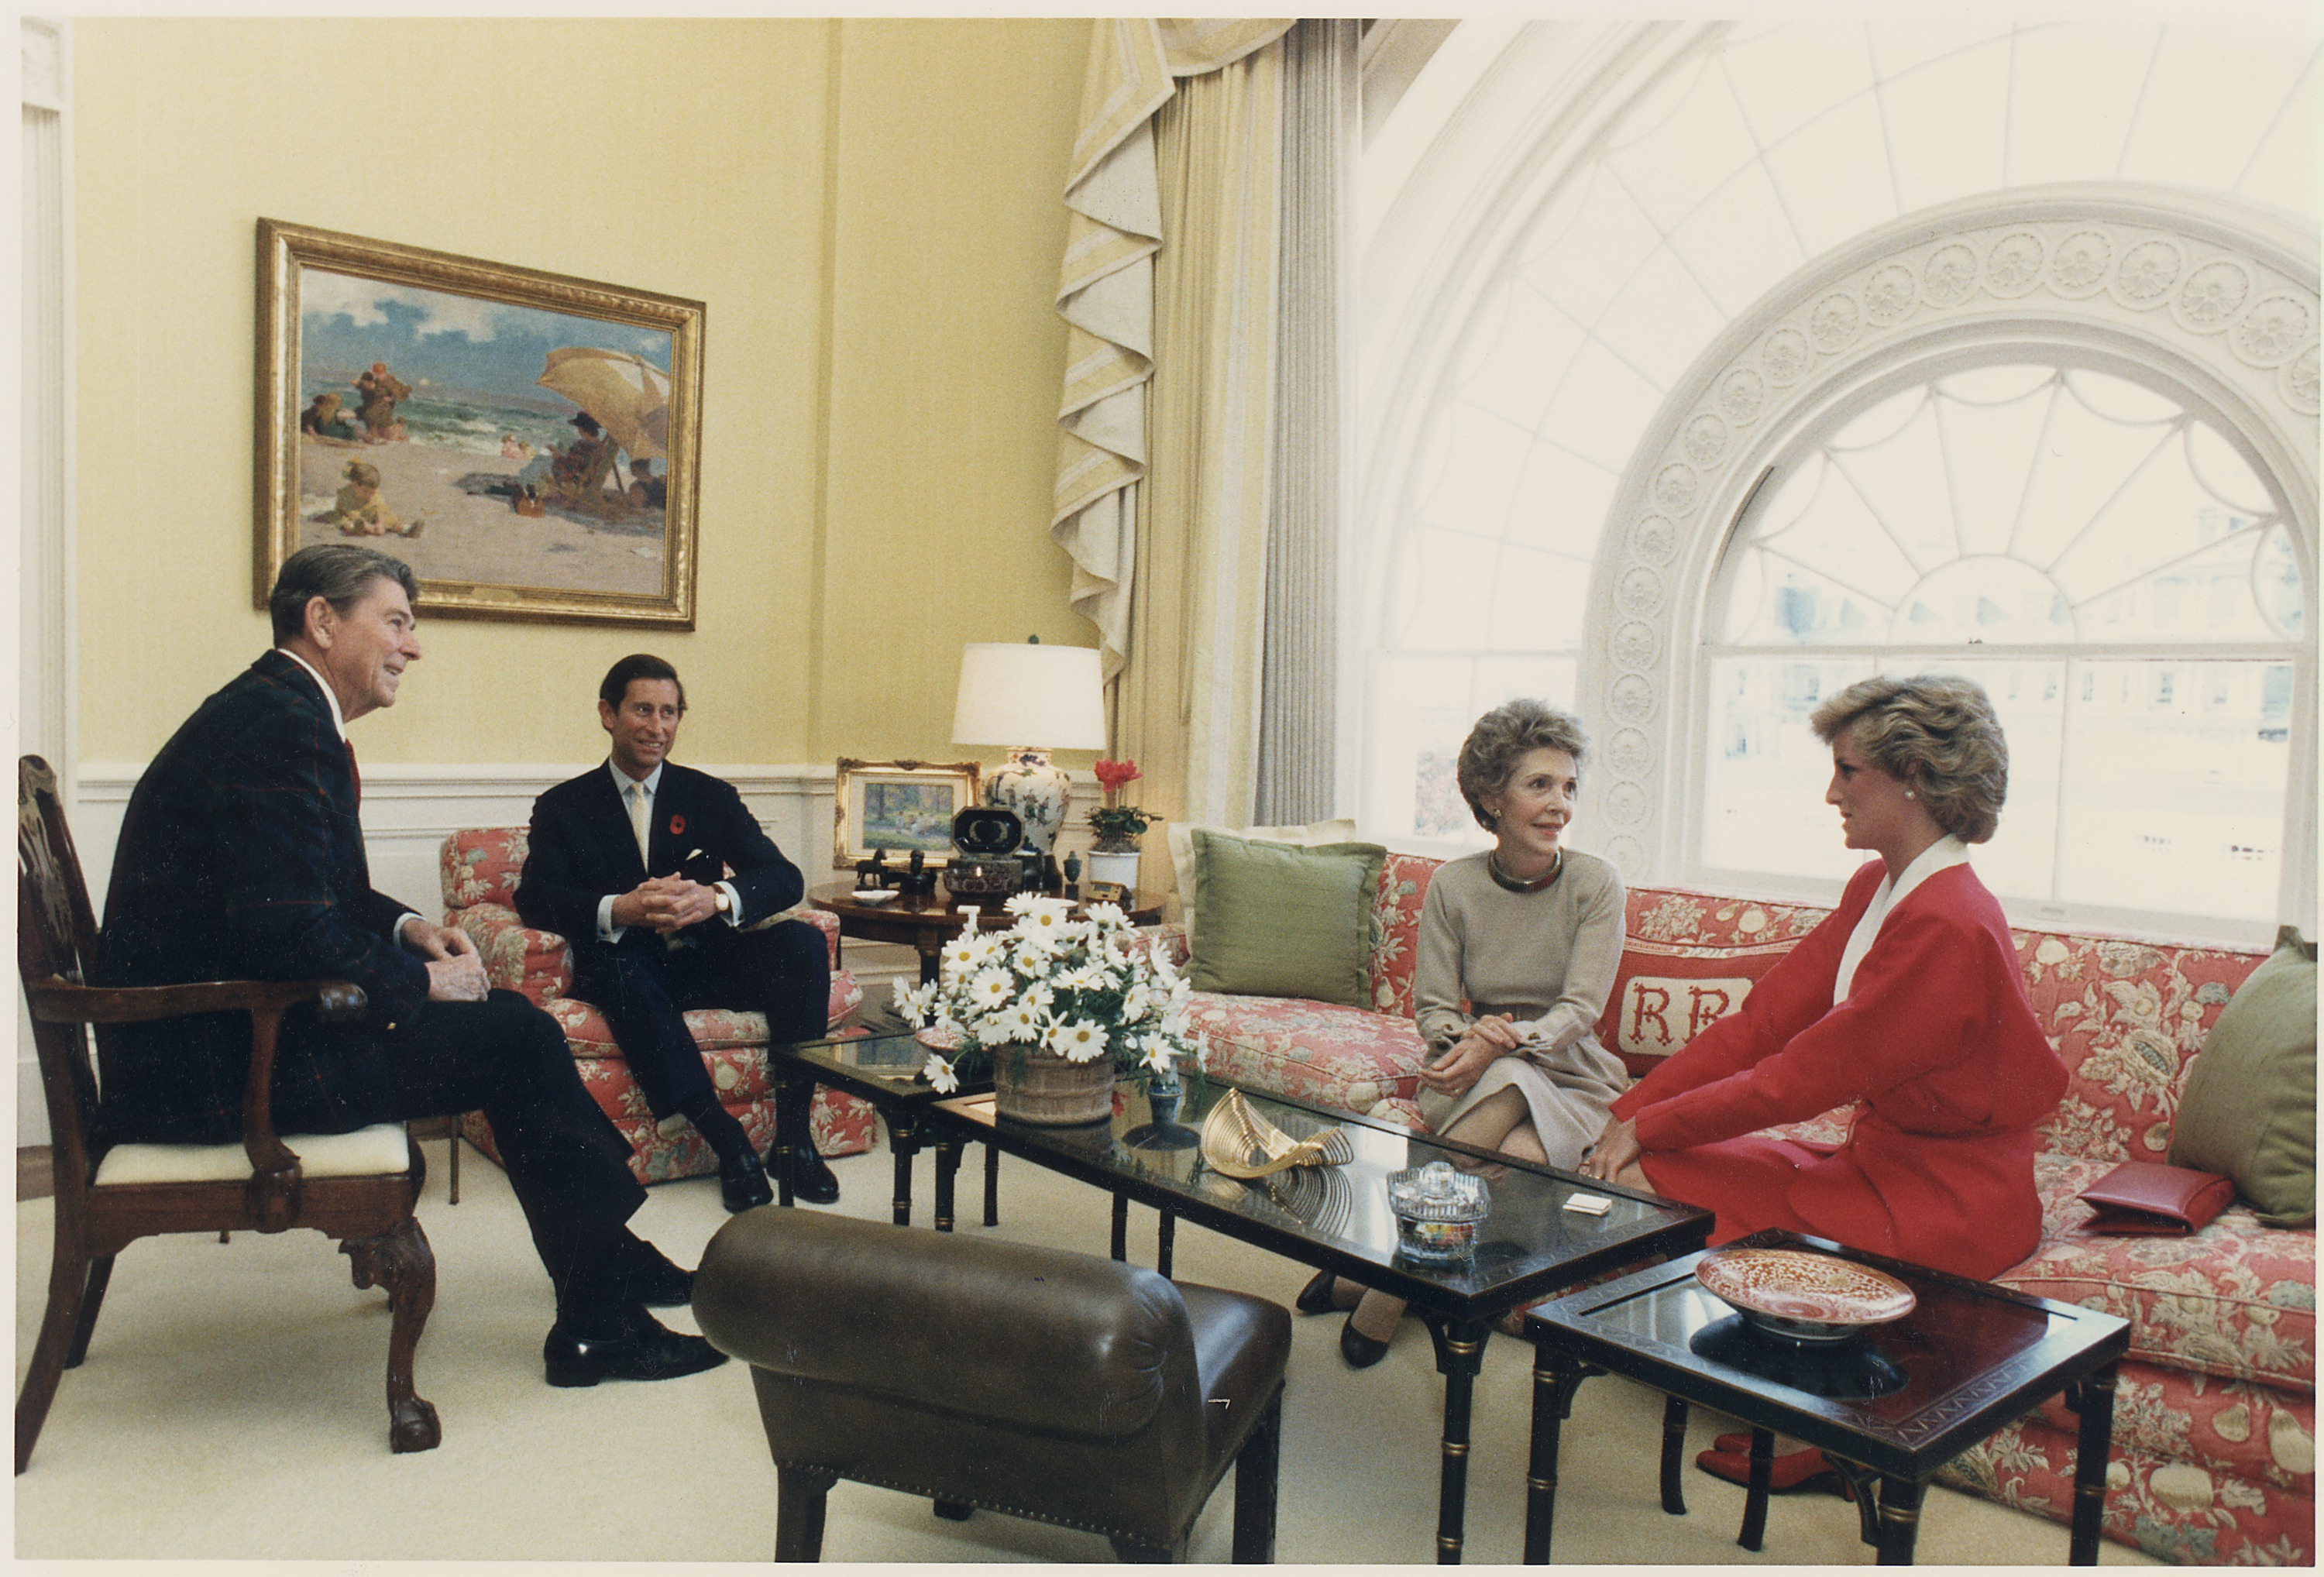 File Photograph Of The Reagans Having Tea With Prince Charles And Princess Diana In